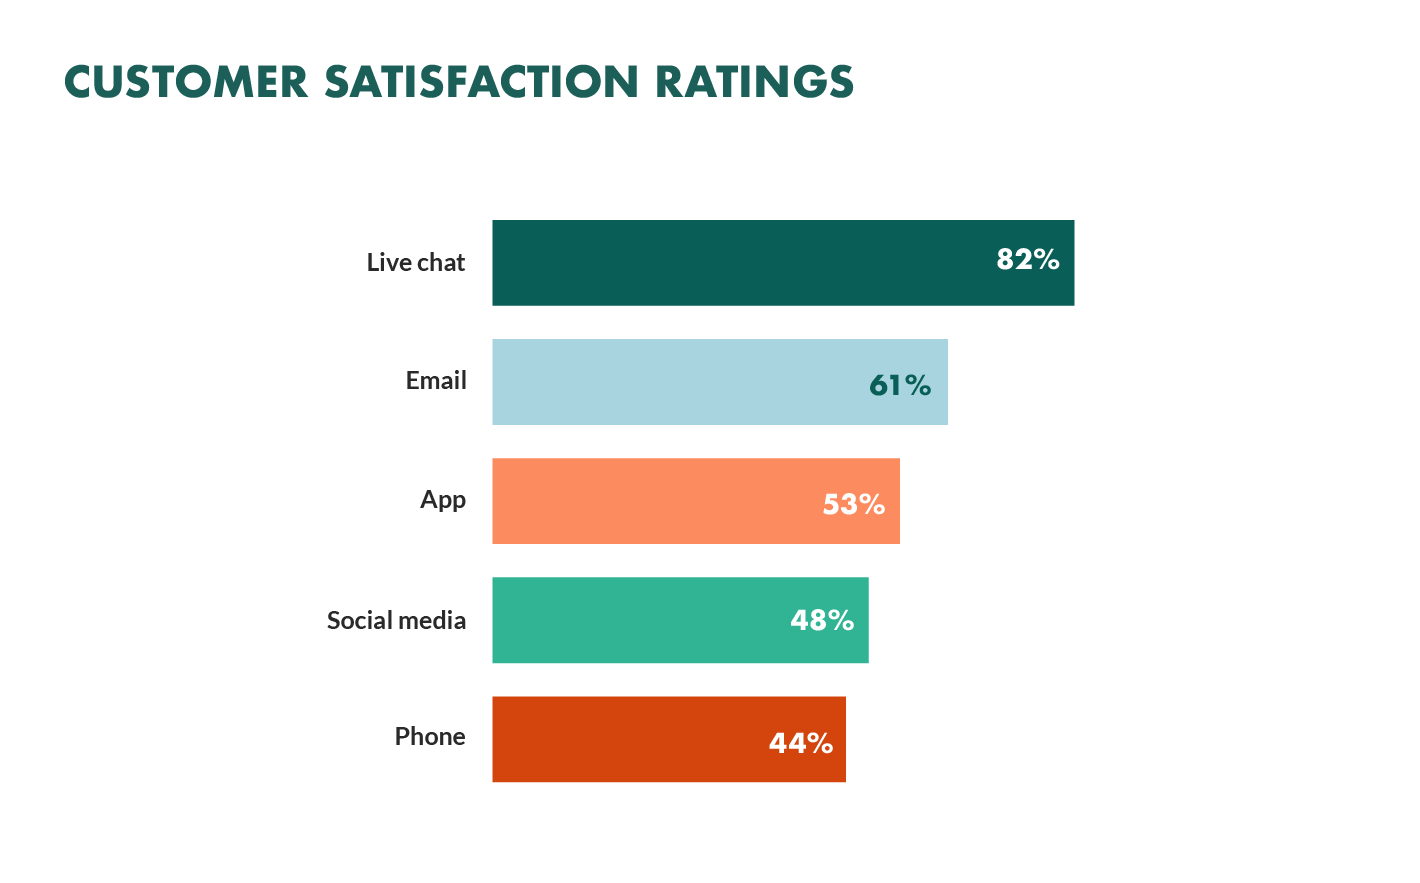 customer satisfaction ratings by channel